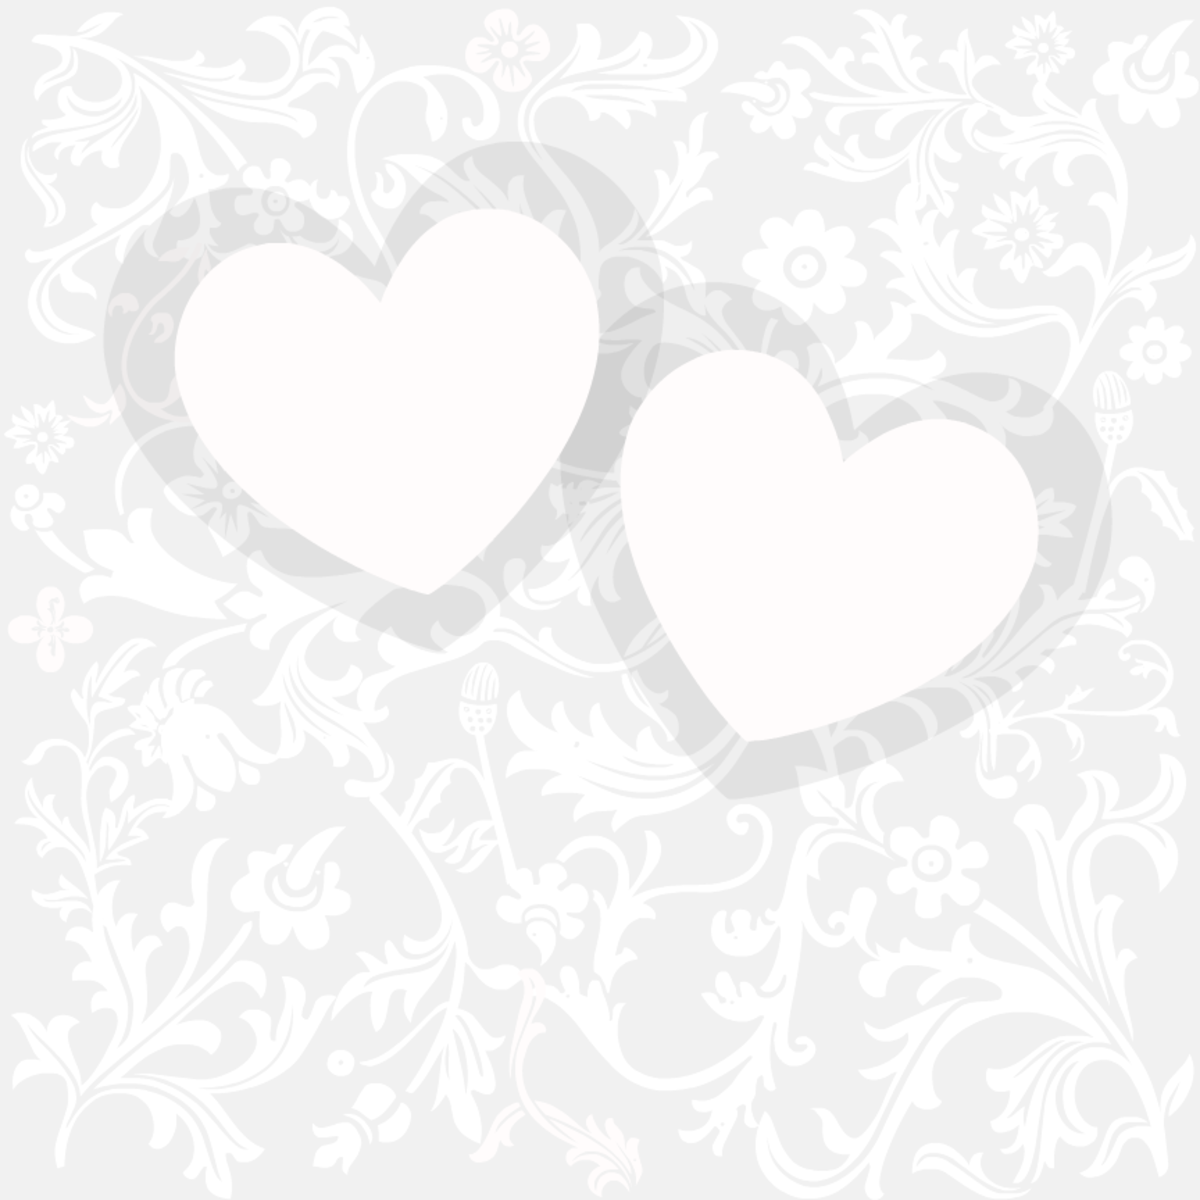 Classic silver floral wedding scrapbook paper with dual overlapping hearts